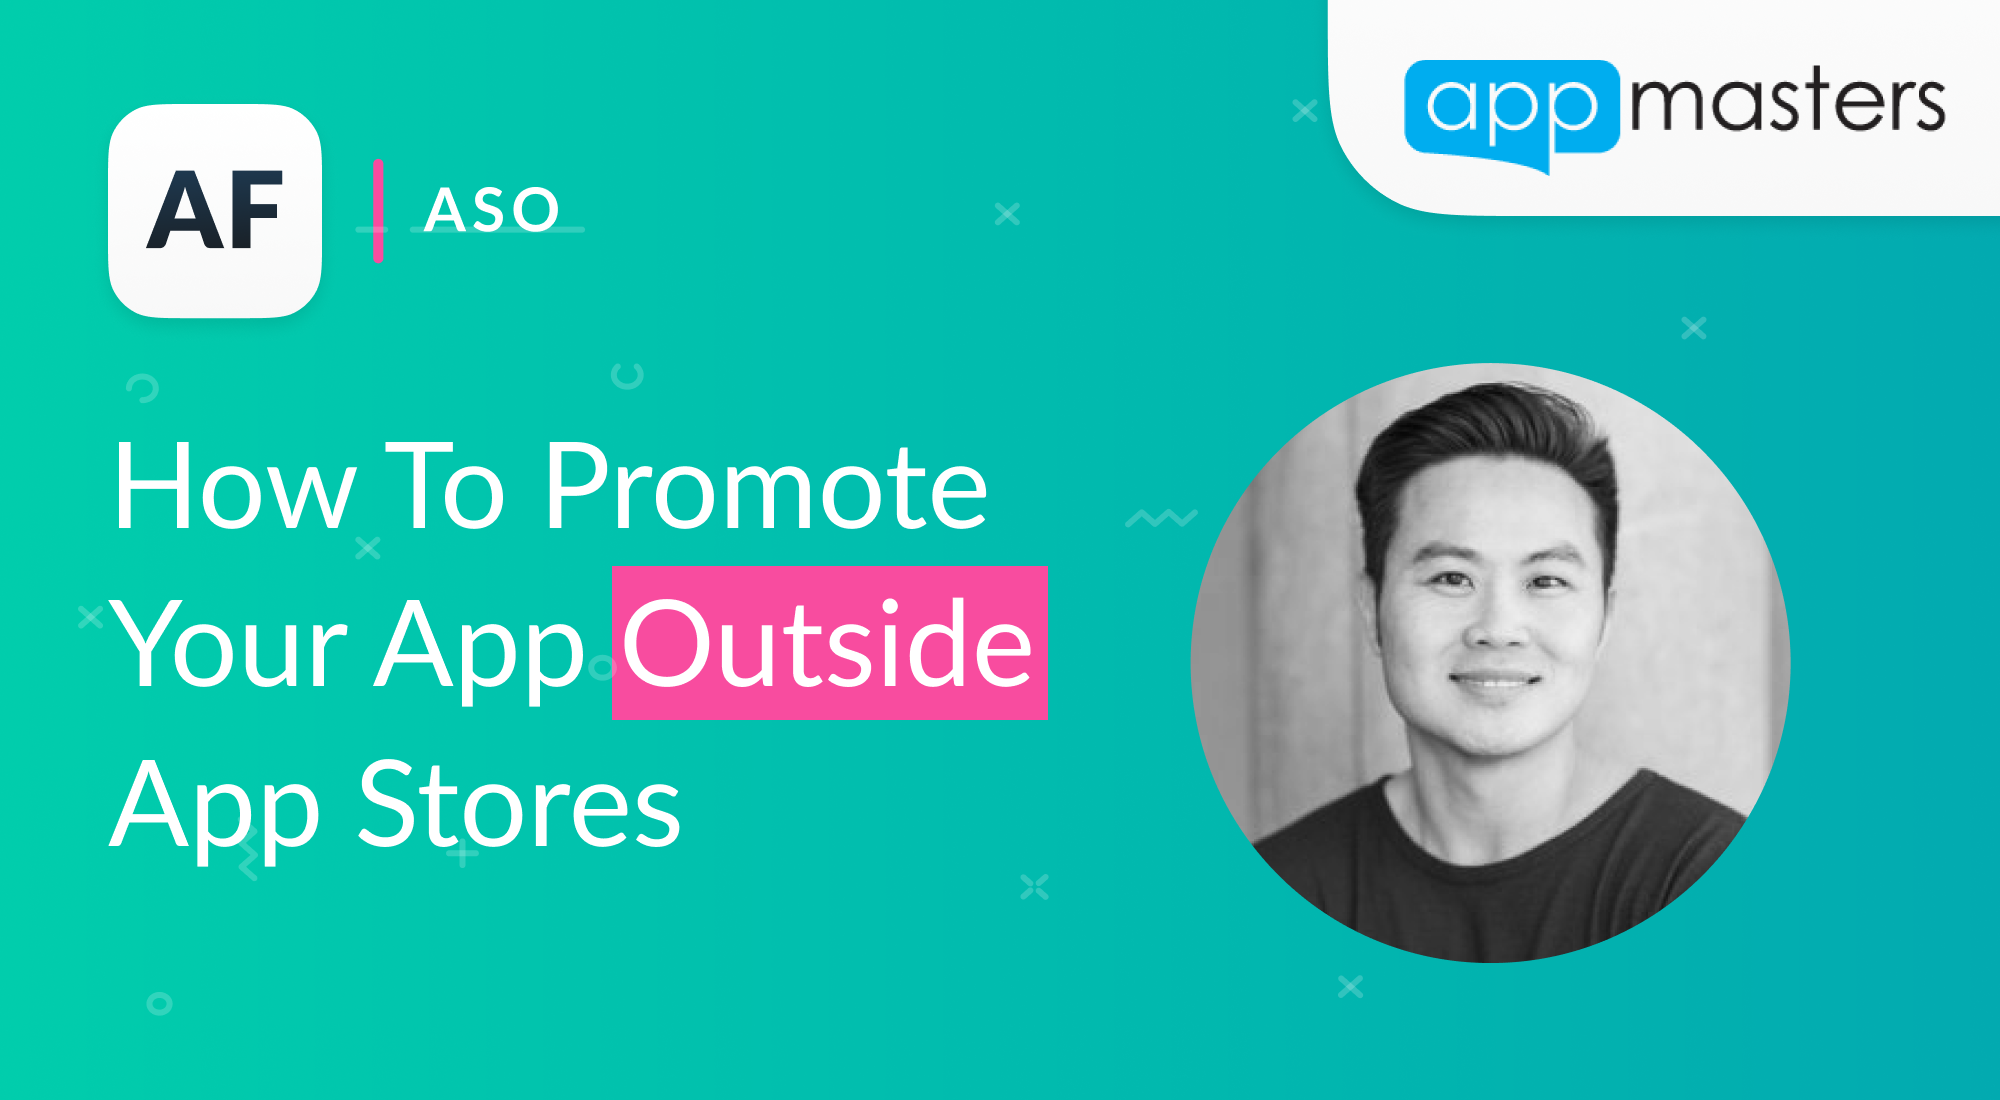 How to promote your app and get more app downloads